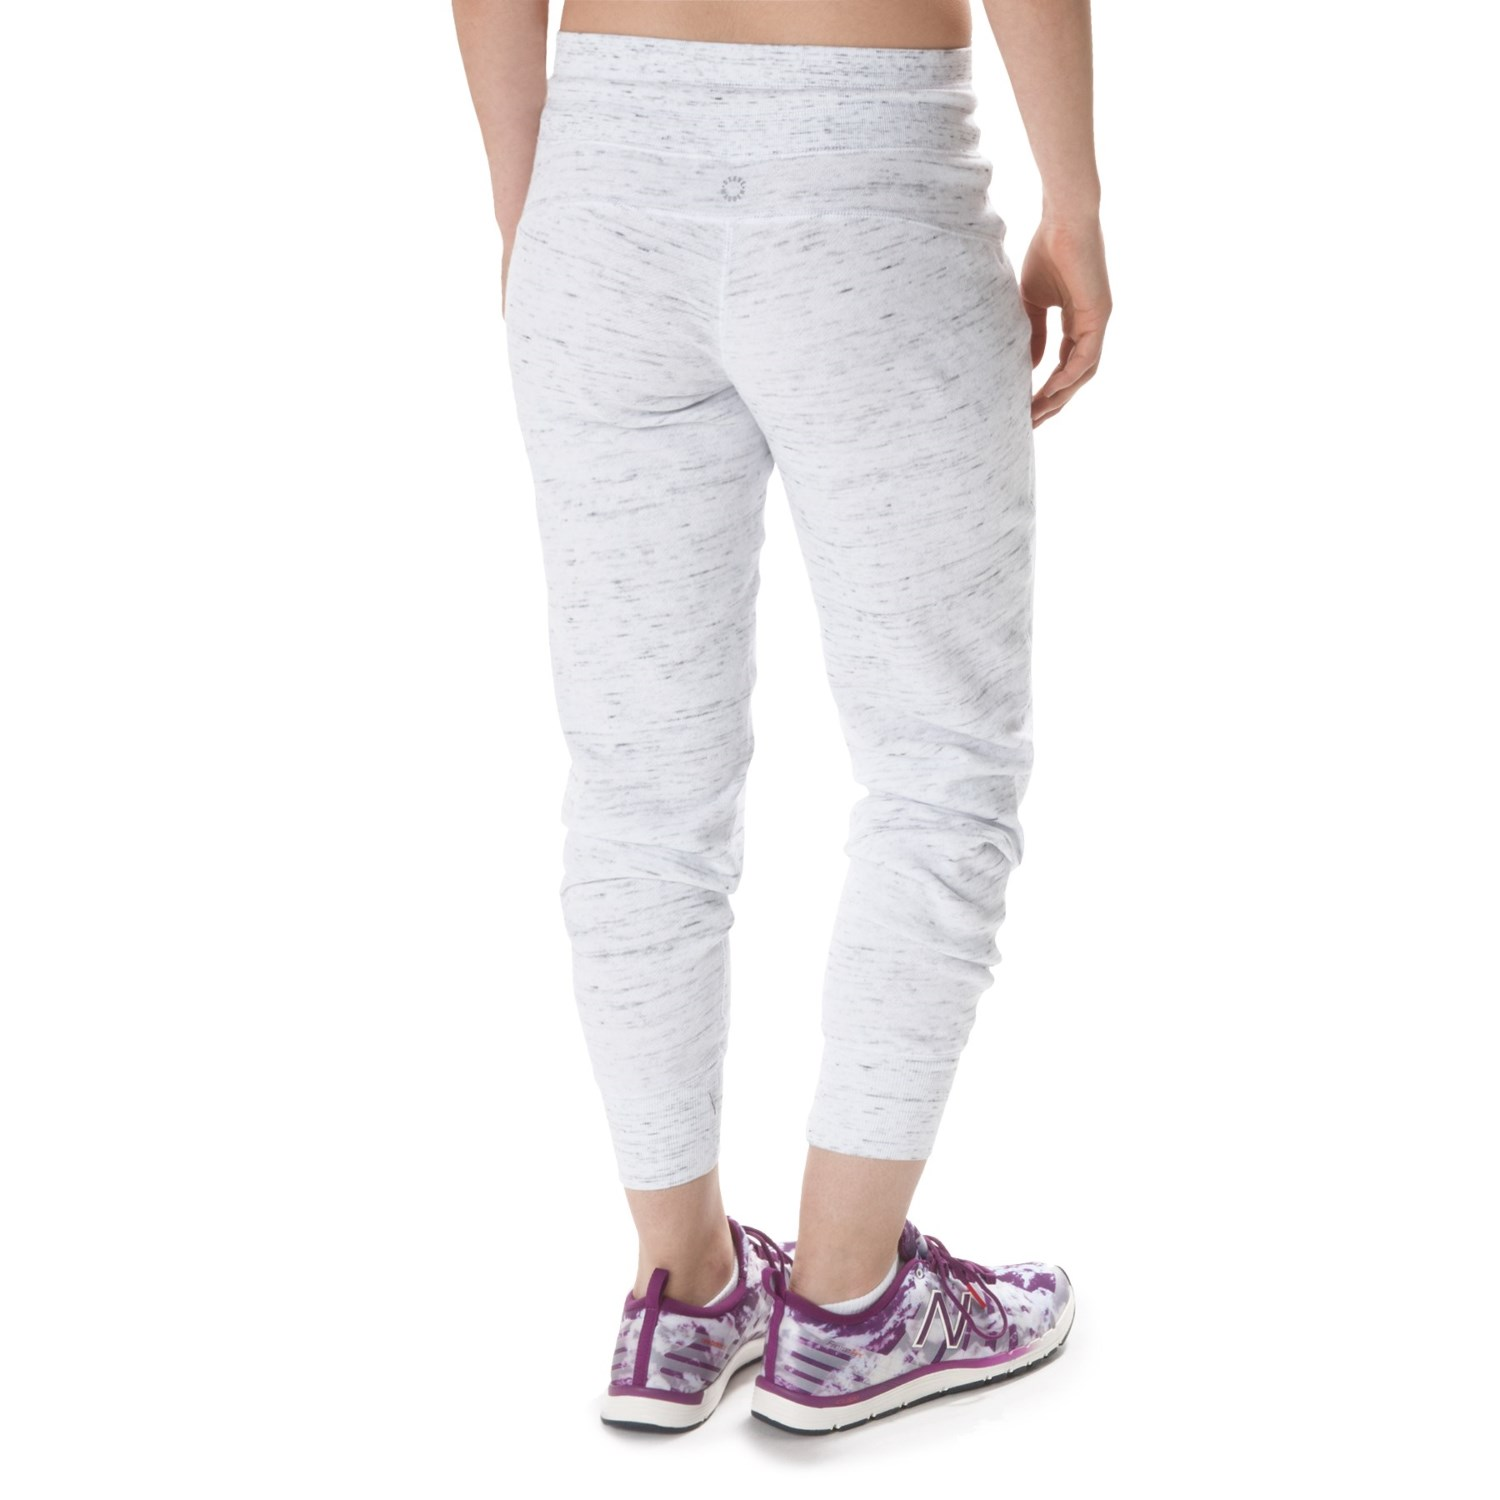 The adidas Originals adicolor Cuffed Jogger Pants are imported Launched in , the Adicolor line was released as a way for wearers to express their unique sense of style and personality. That vision continues today with the Men's adidas Originals adicolor Cuffed Jogger dirtyinstalzonevx6.ga: $